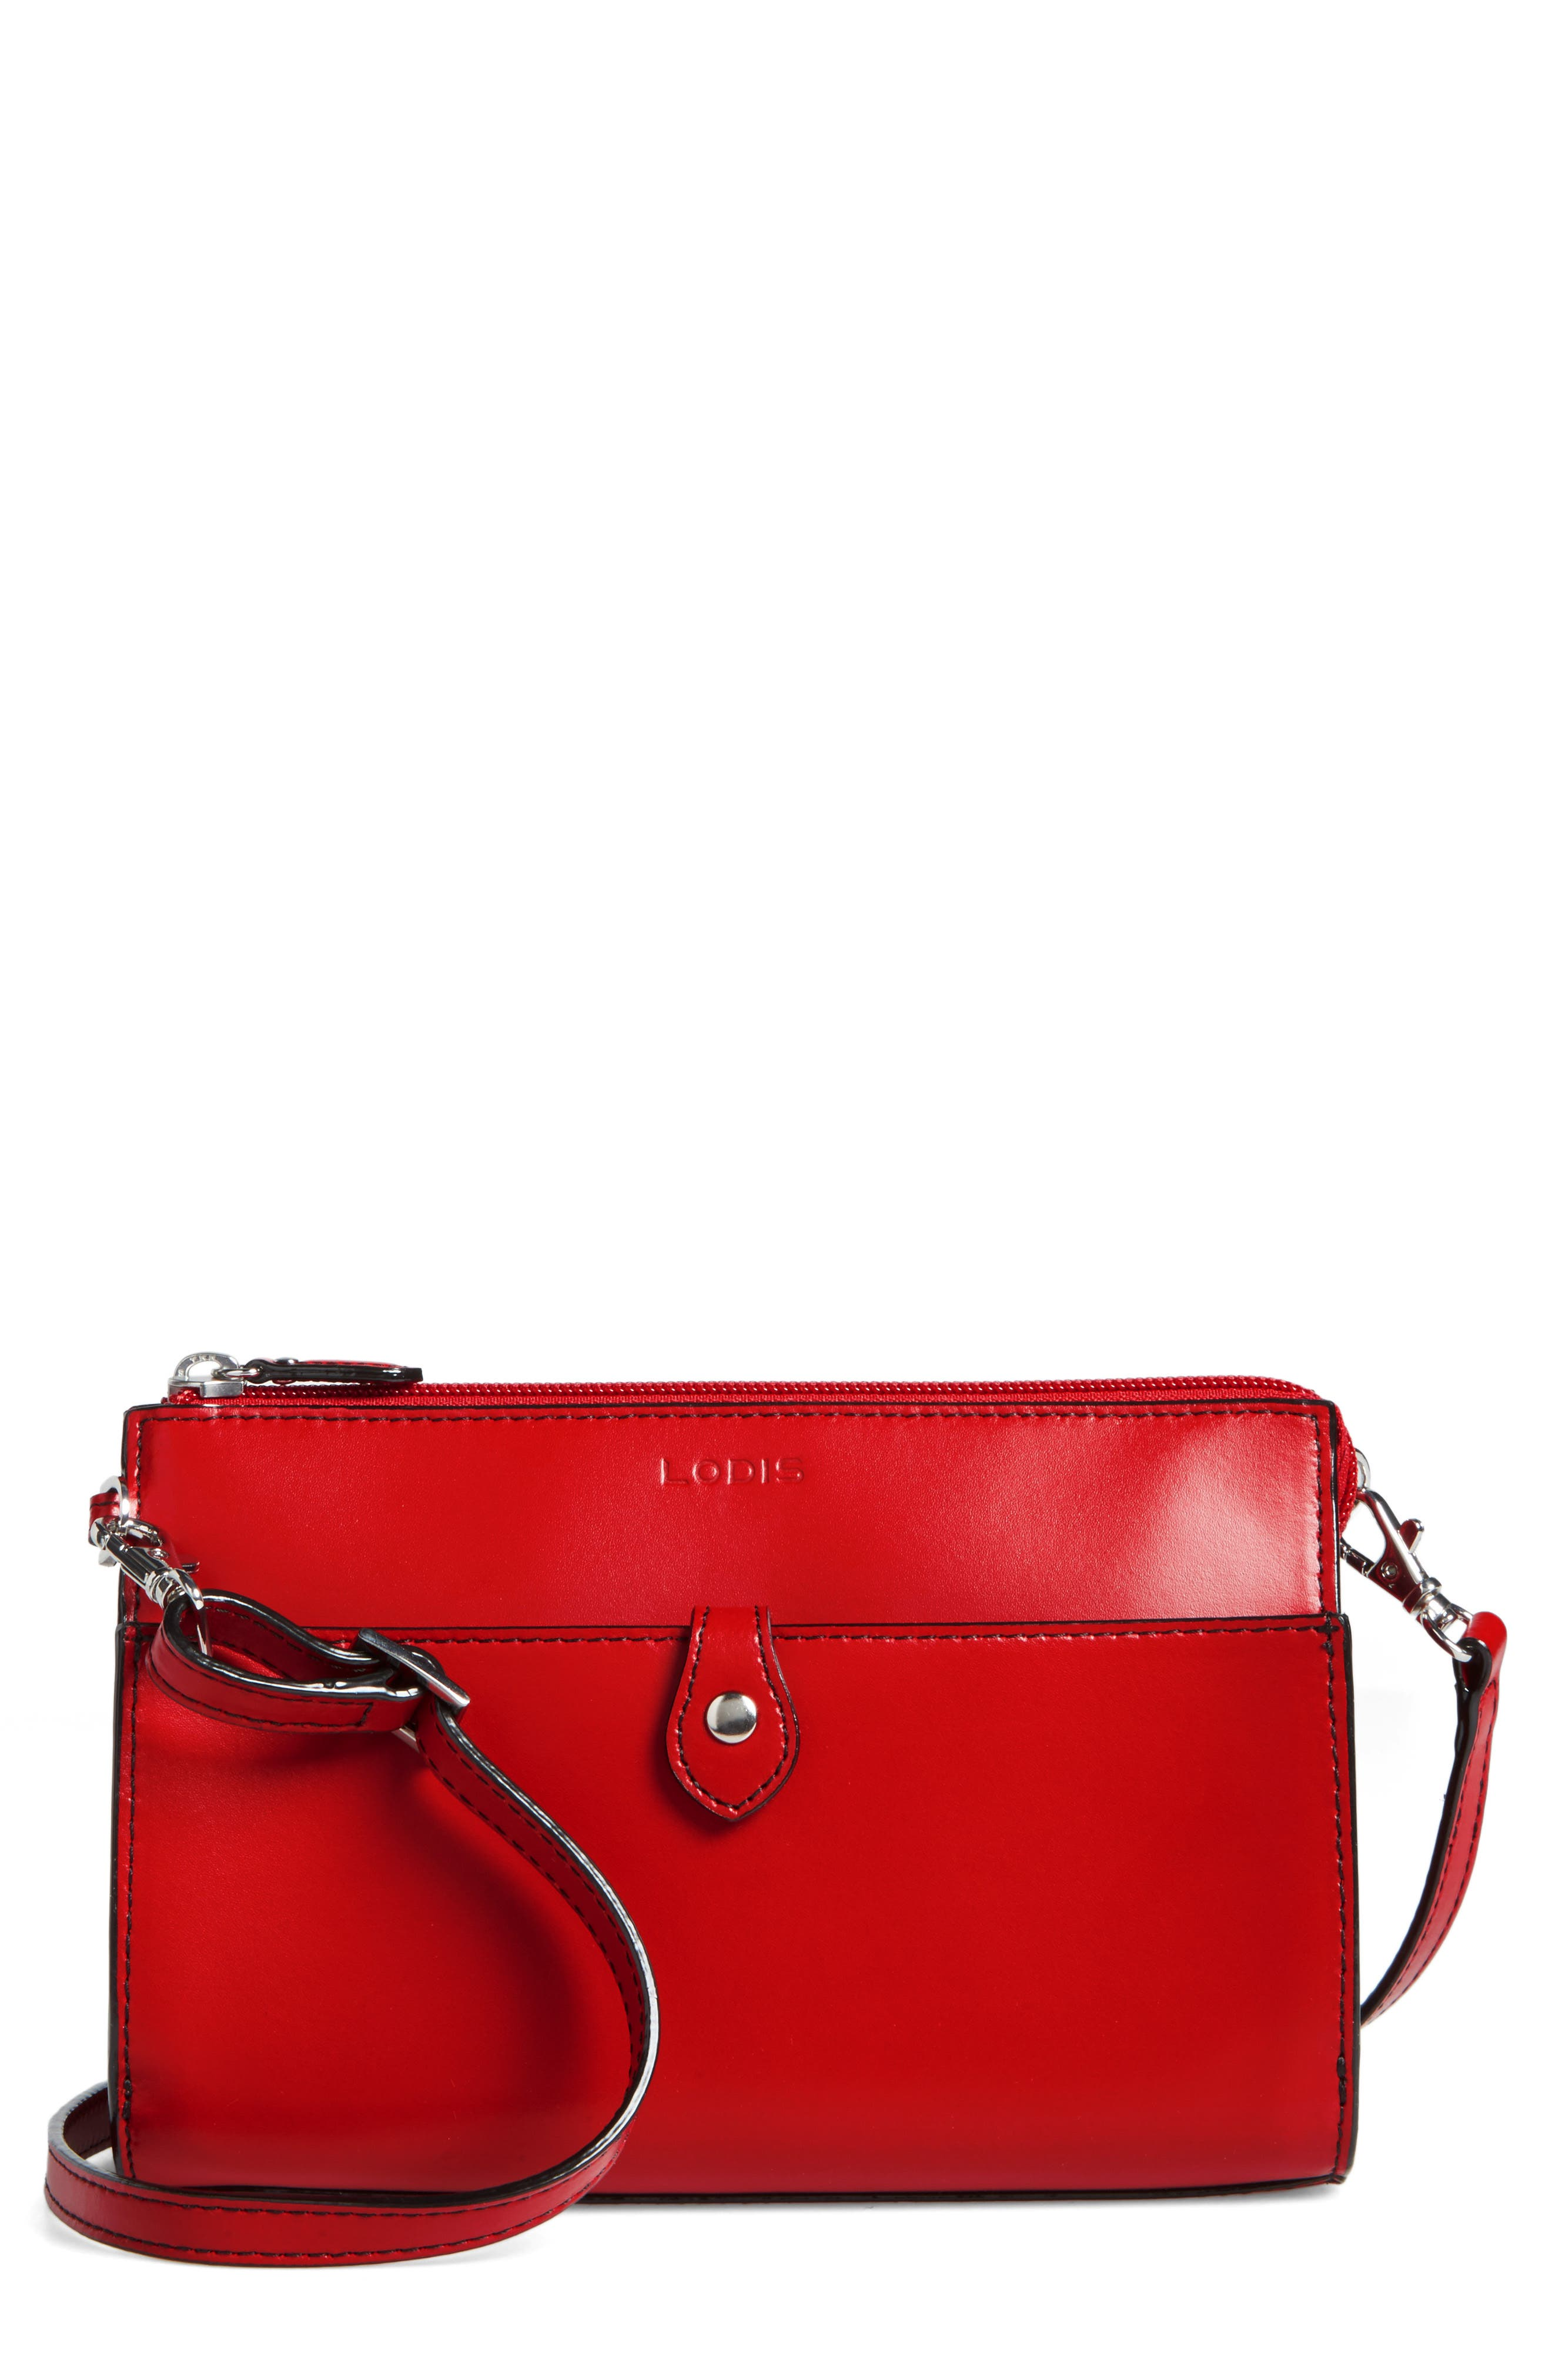 Lodis Audrey Vicky Convertible Leather Crossbody Bag